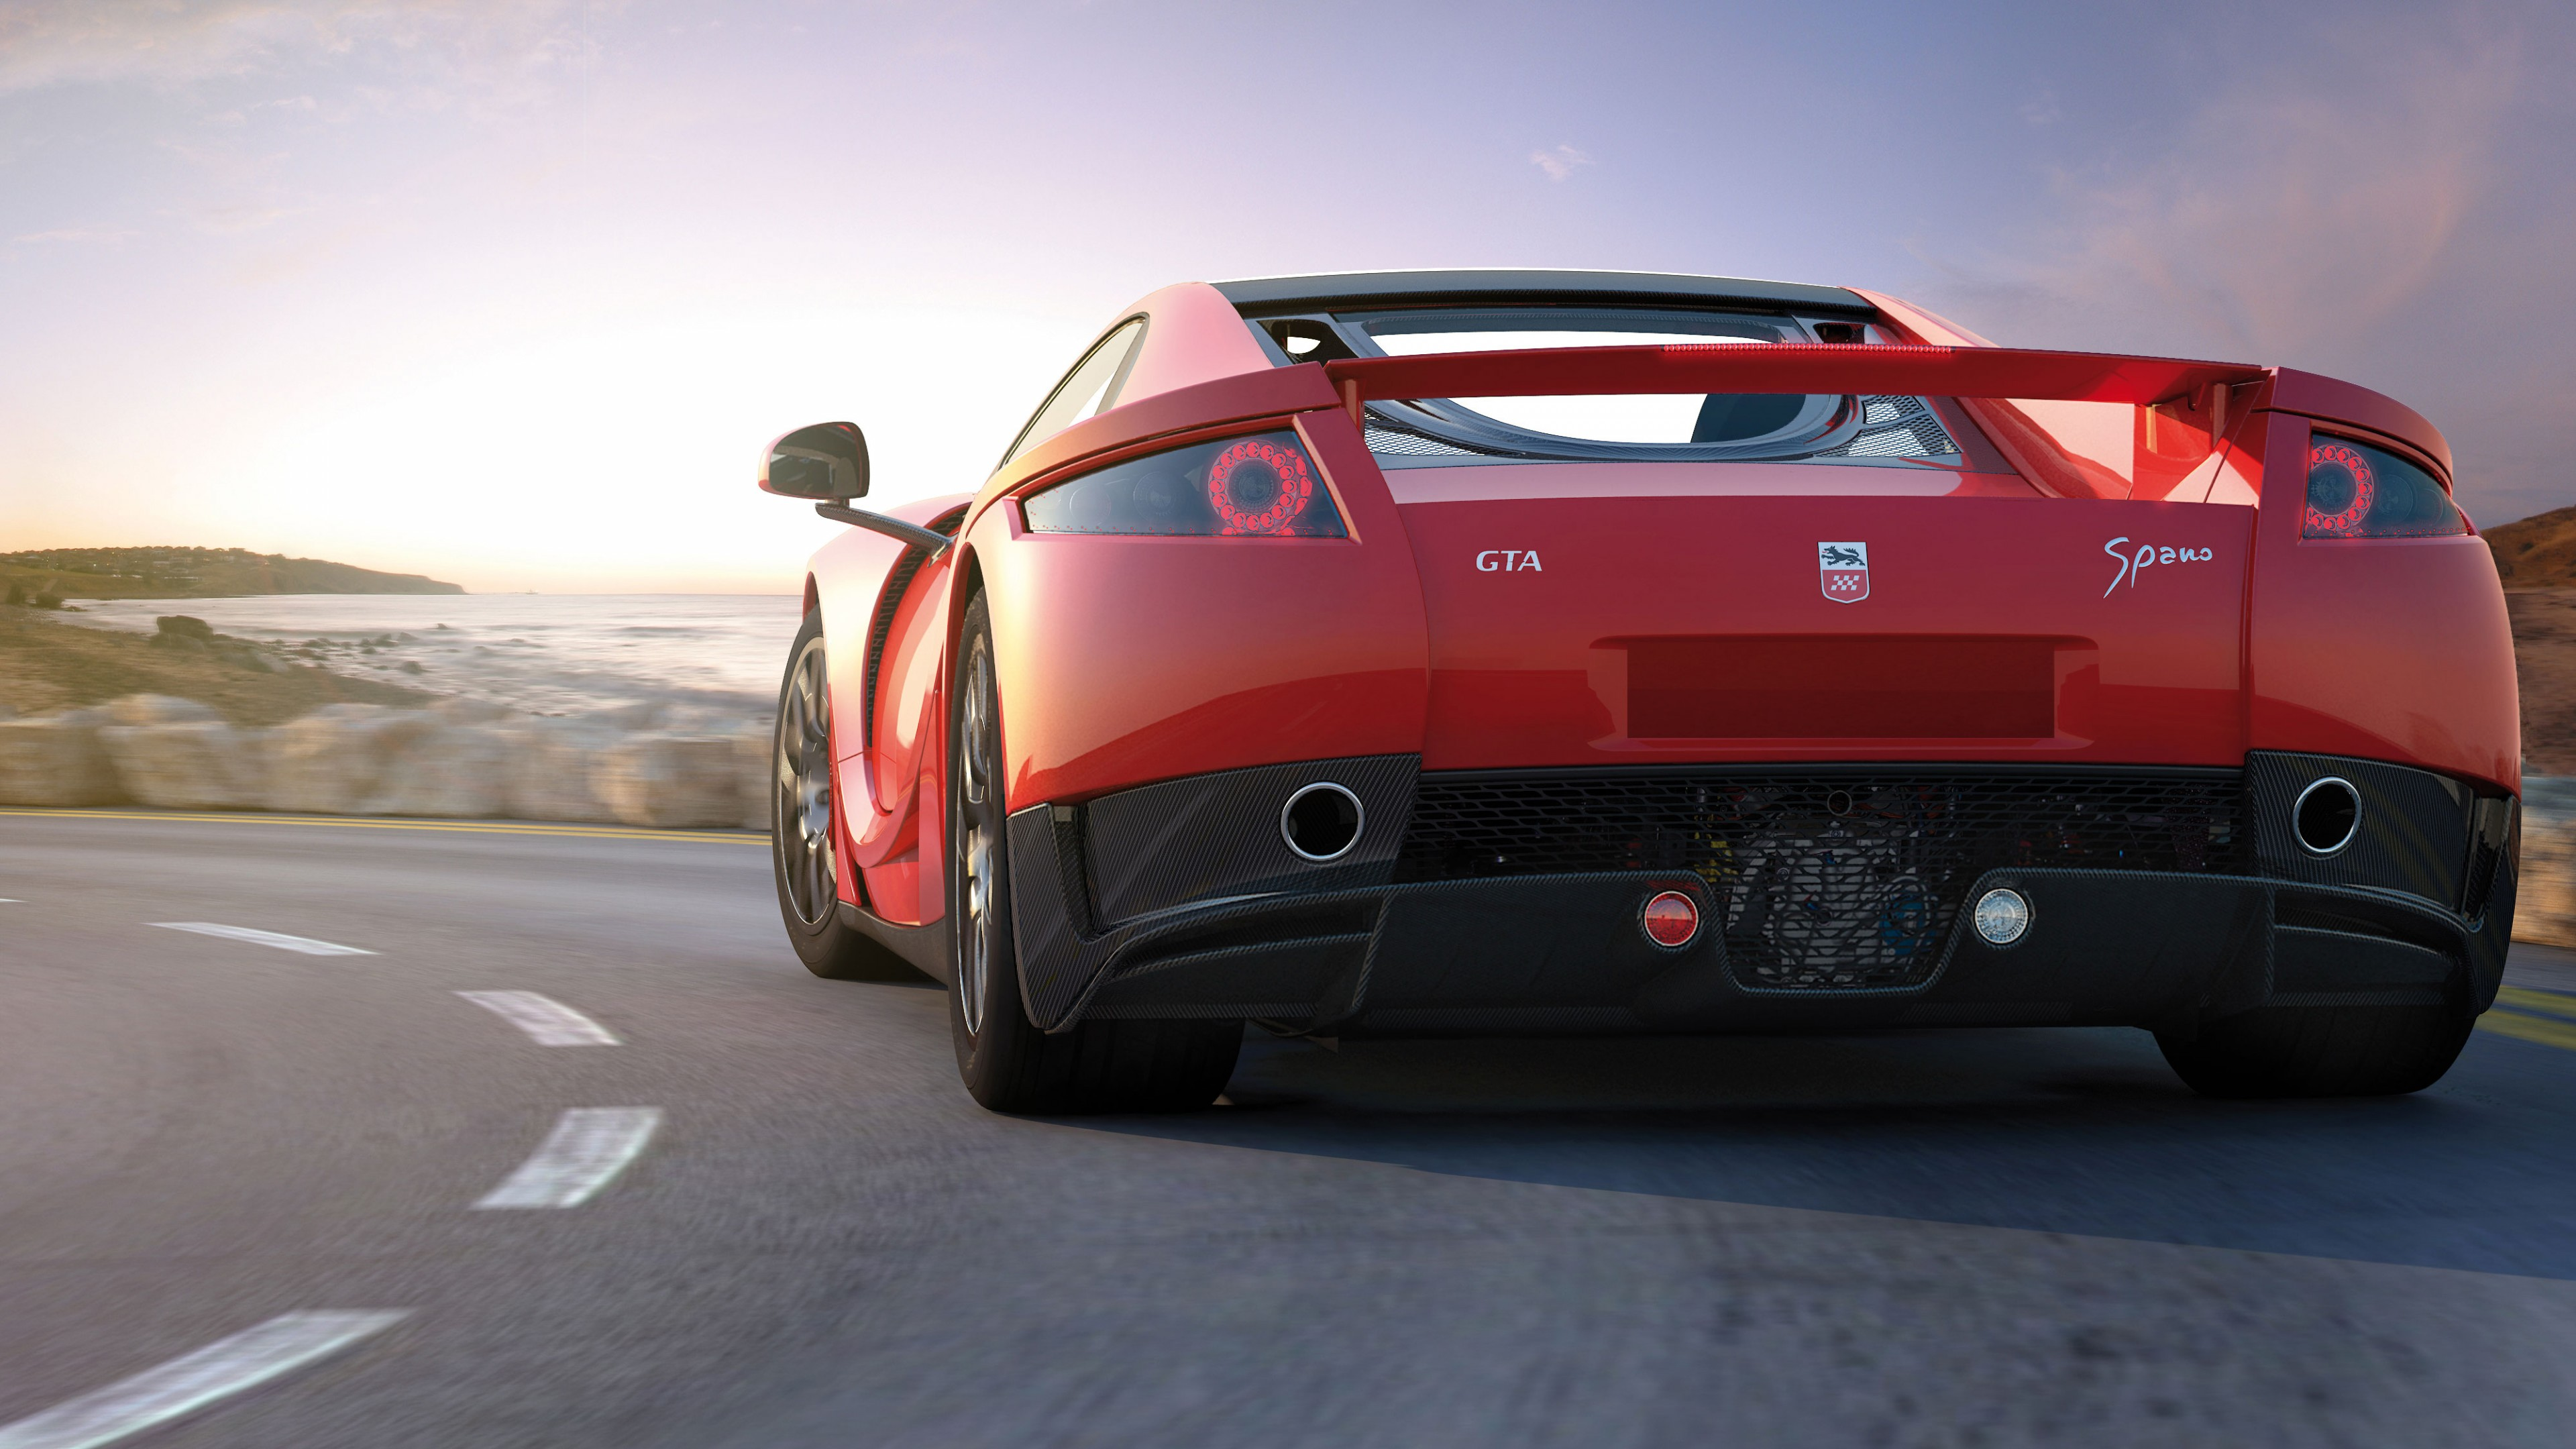 Car Interior Wallpaper Hd Wallpaper Gta Spano Supercar Coupe Red Cars Amp Bikes 6121